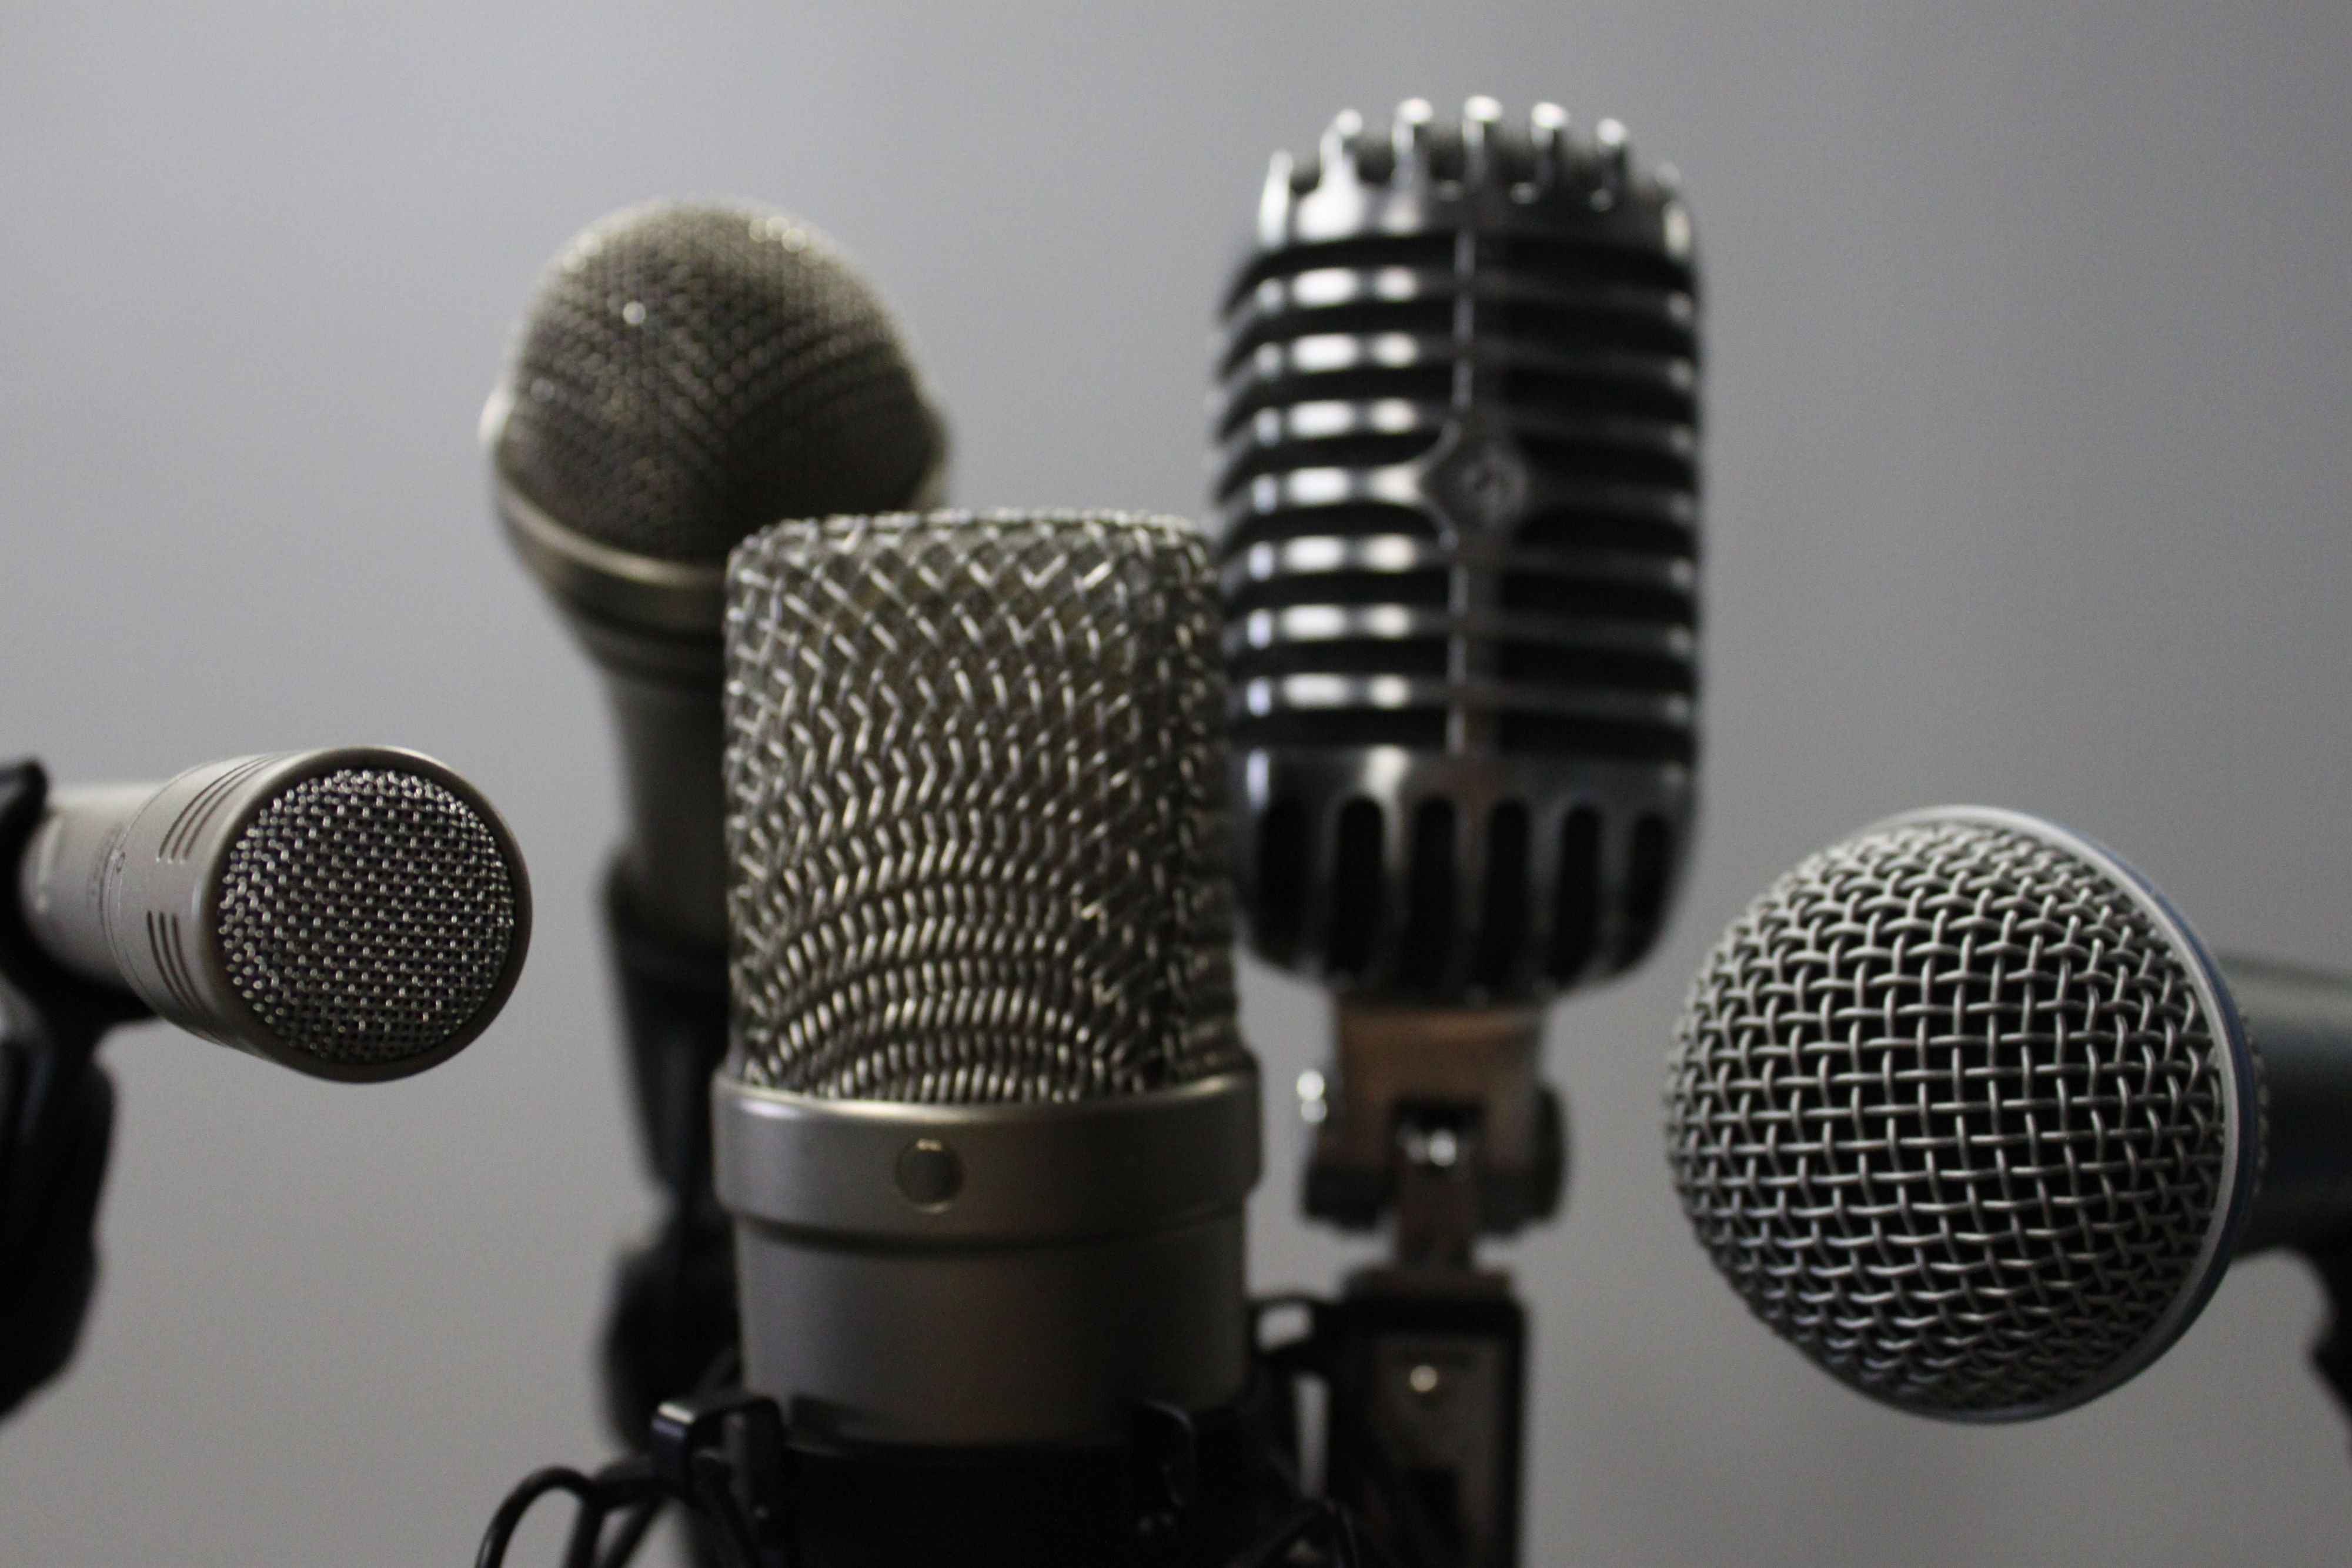 A stock image of a variety of microphones